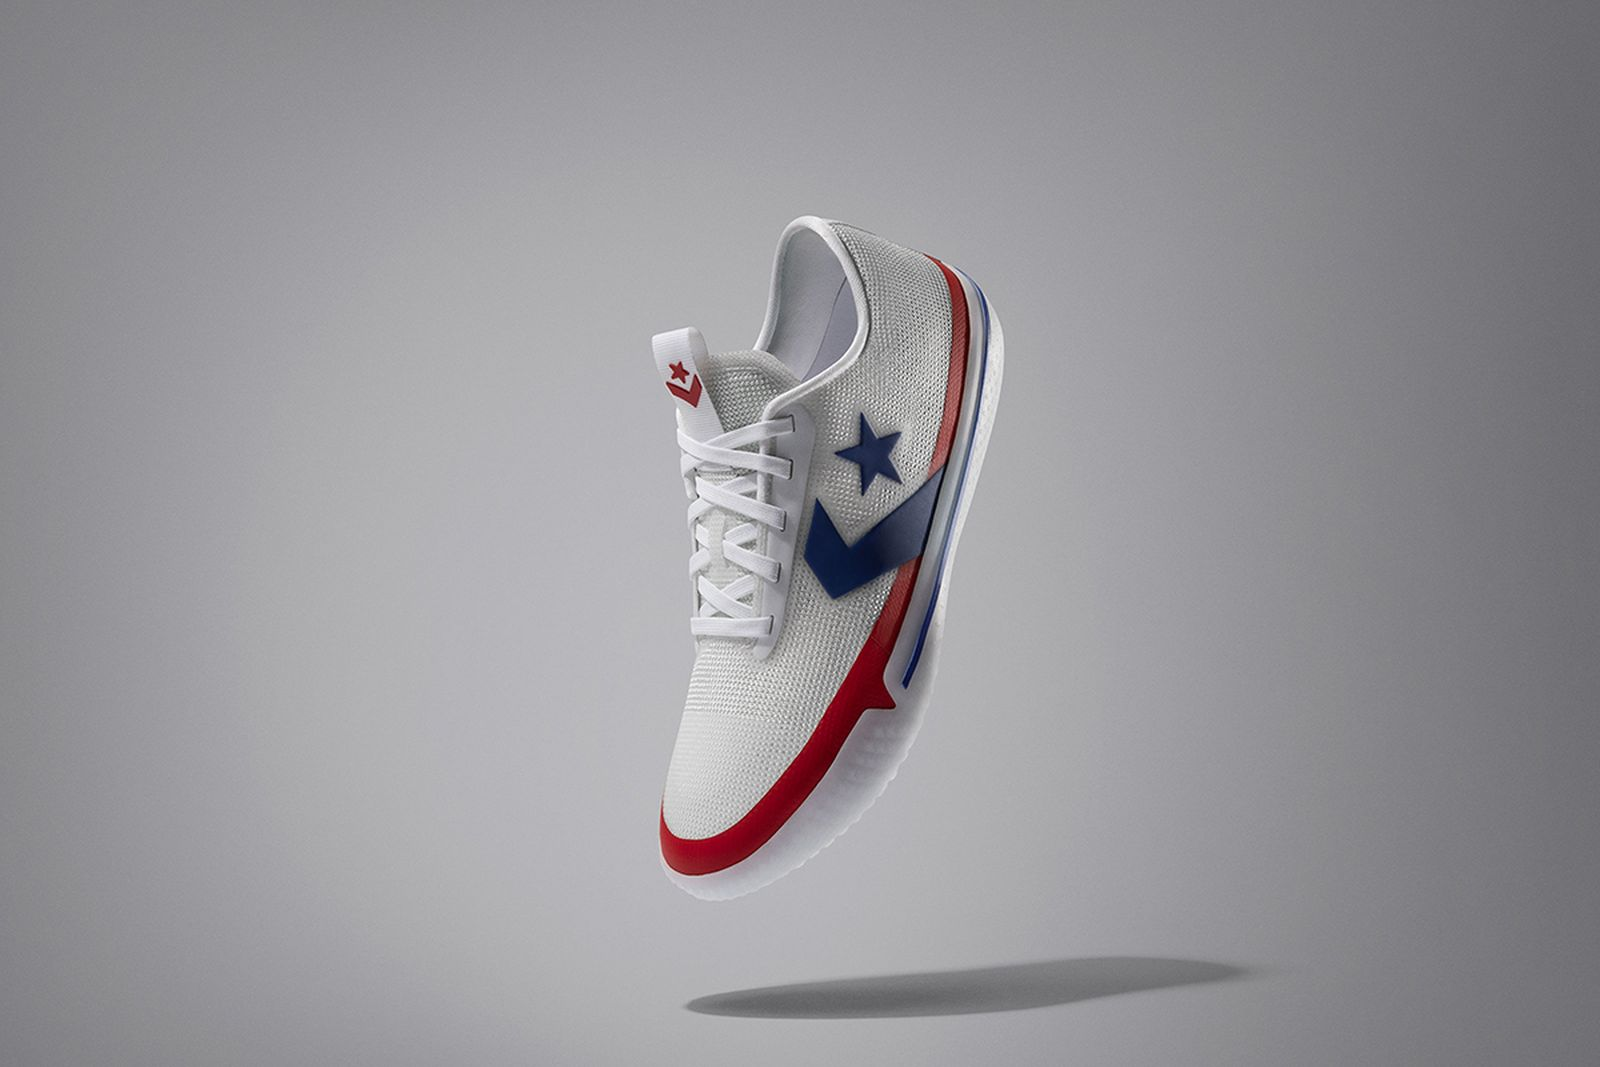 nike-nba-all-star-2020-collection-release-date-price-2-02